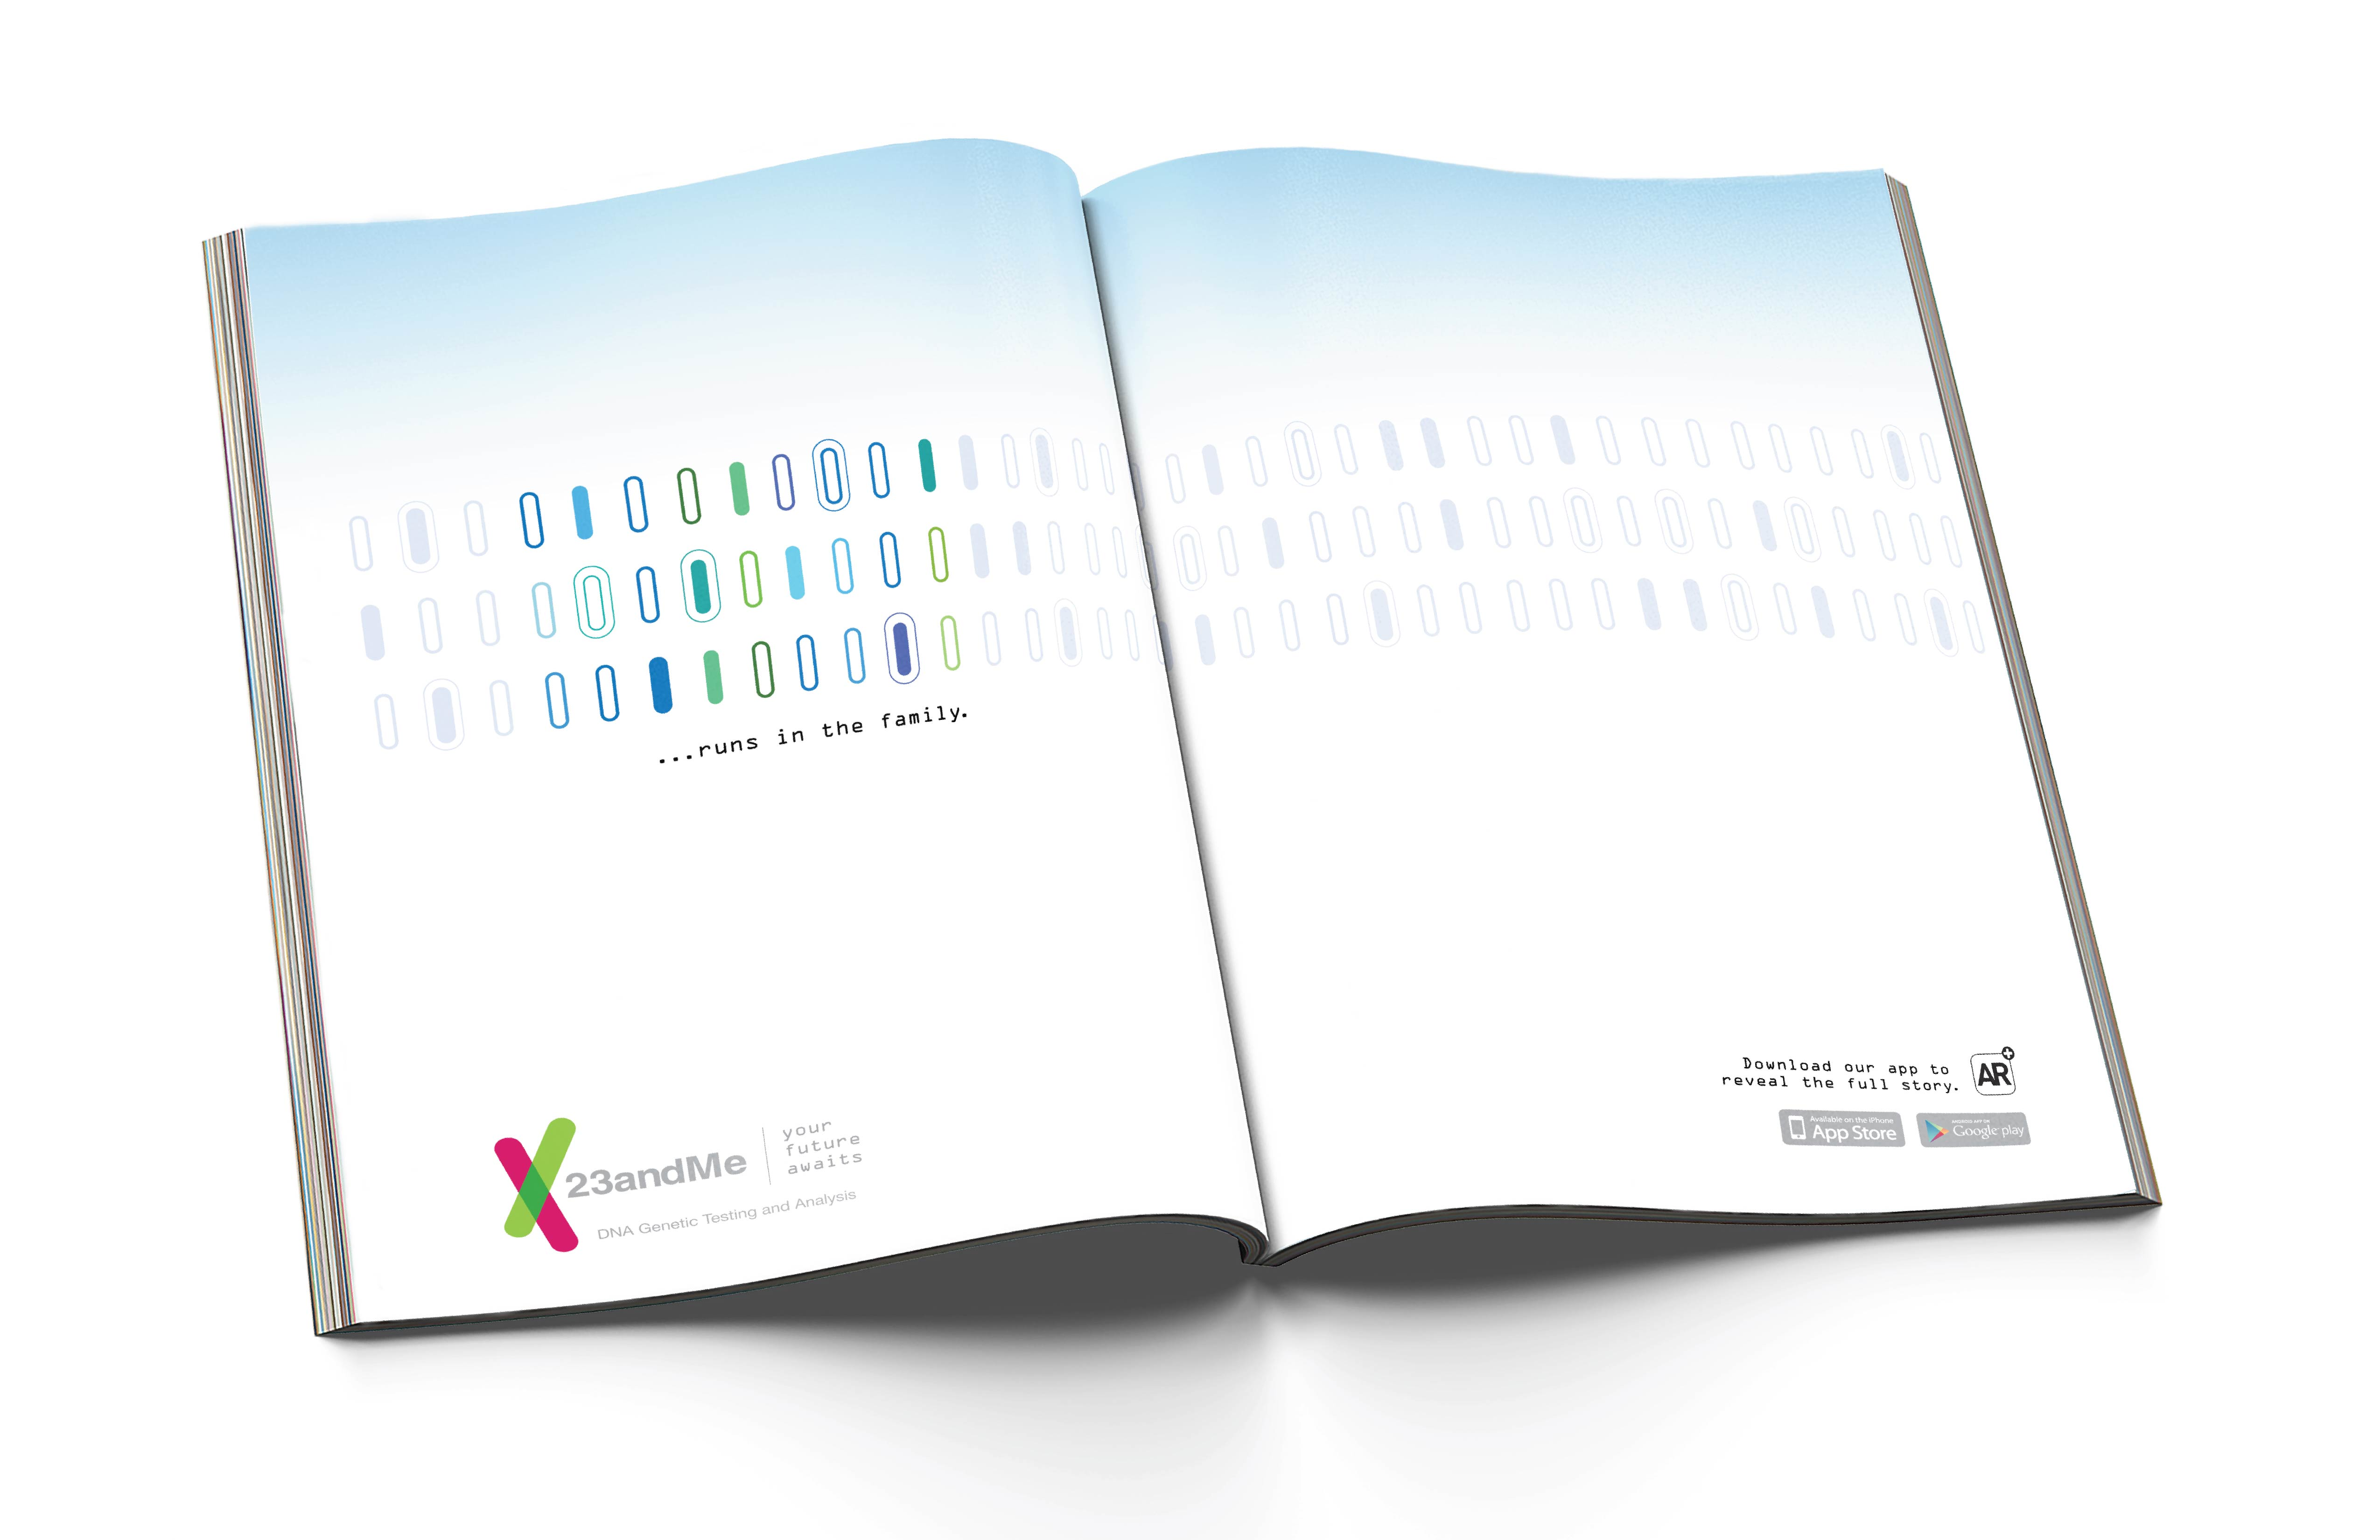 23andMe ad by Charlotte Frank and Liz Swartz